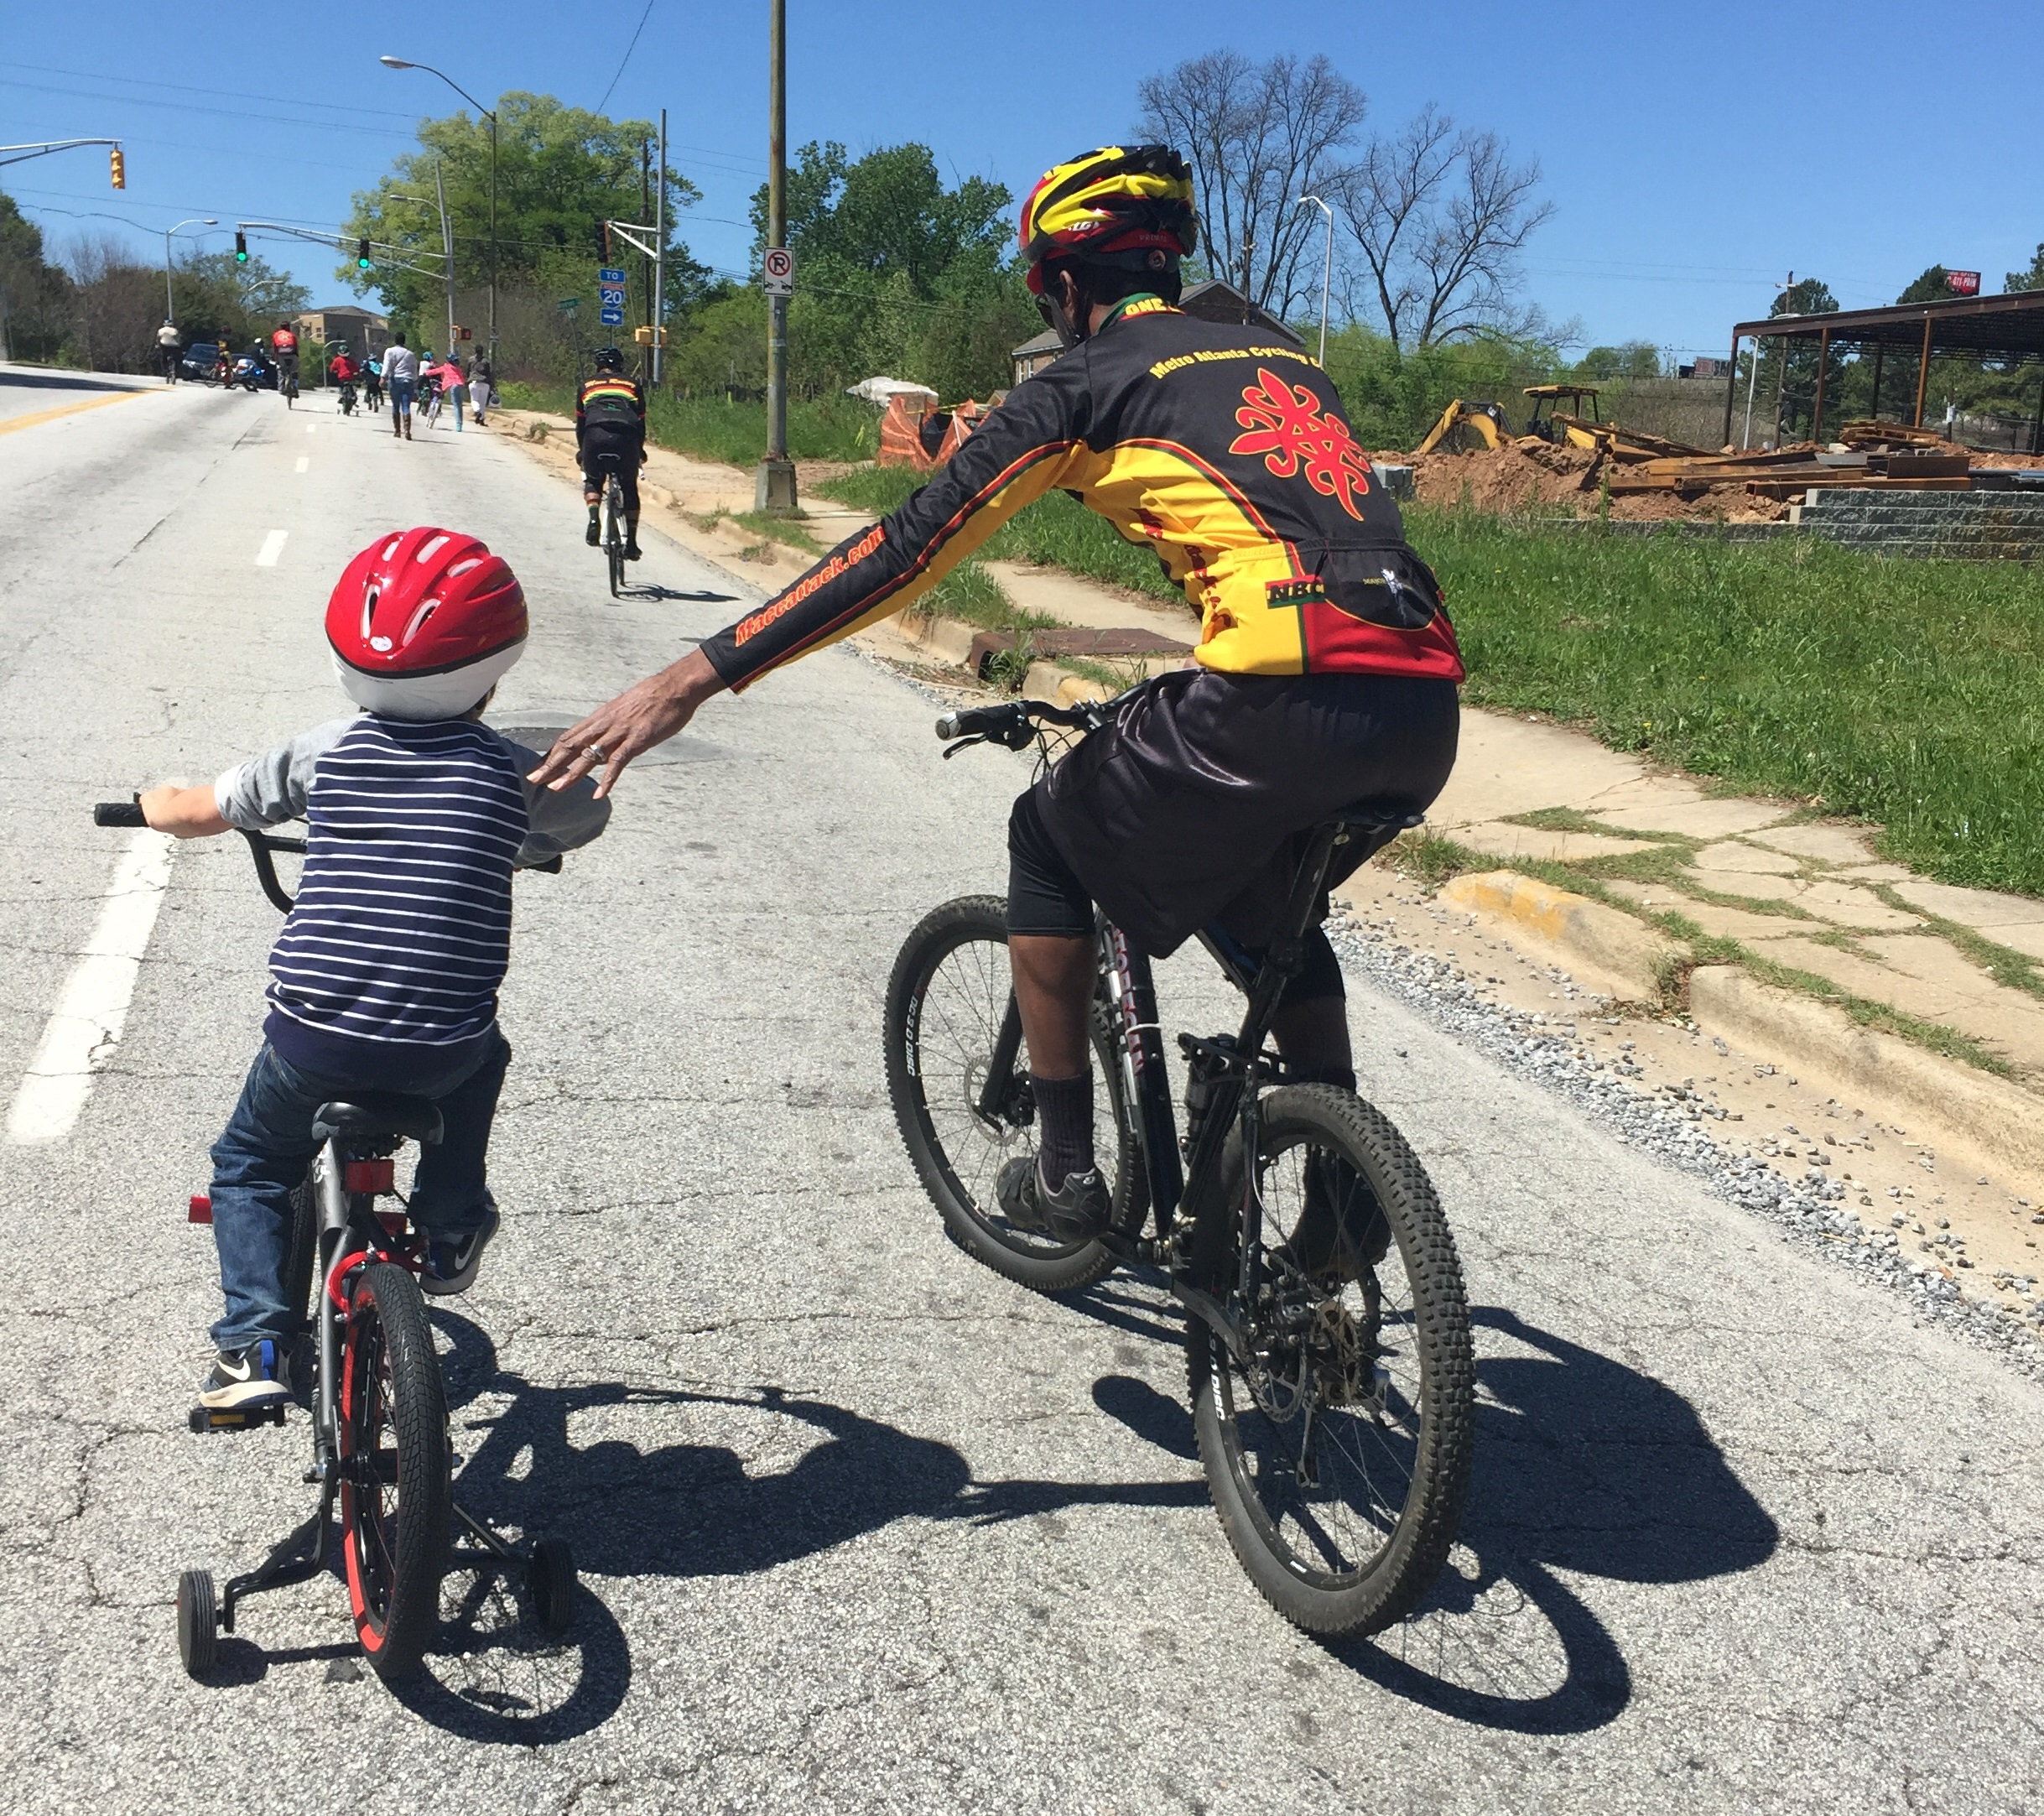 Fulton County Sheriff's Office Bike Safety Rodeo!